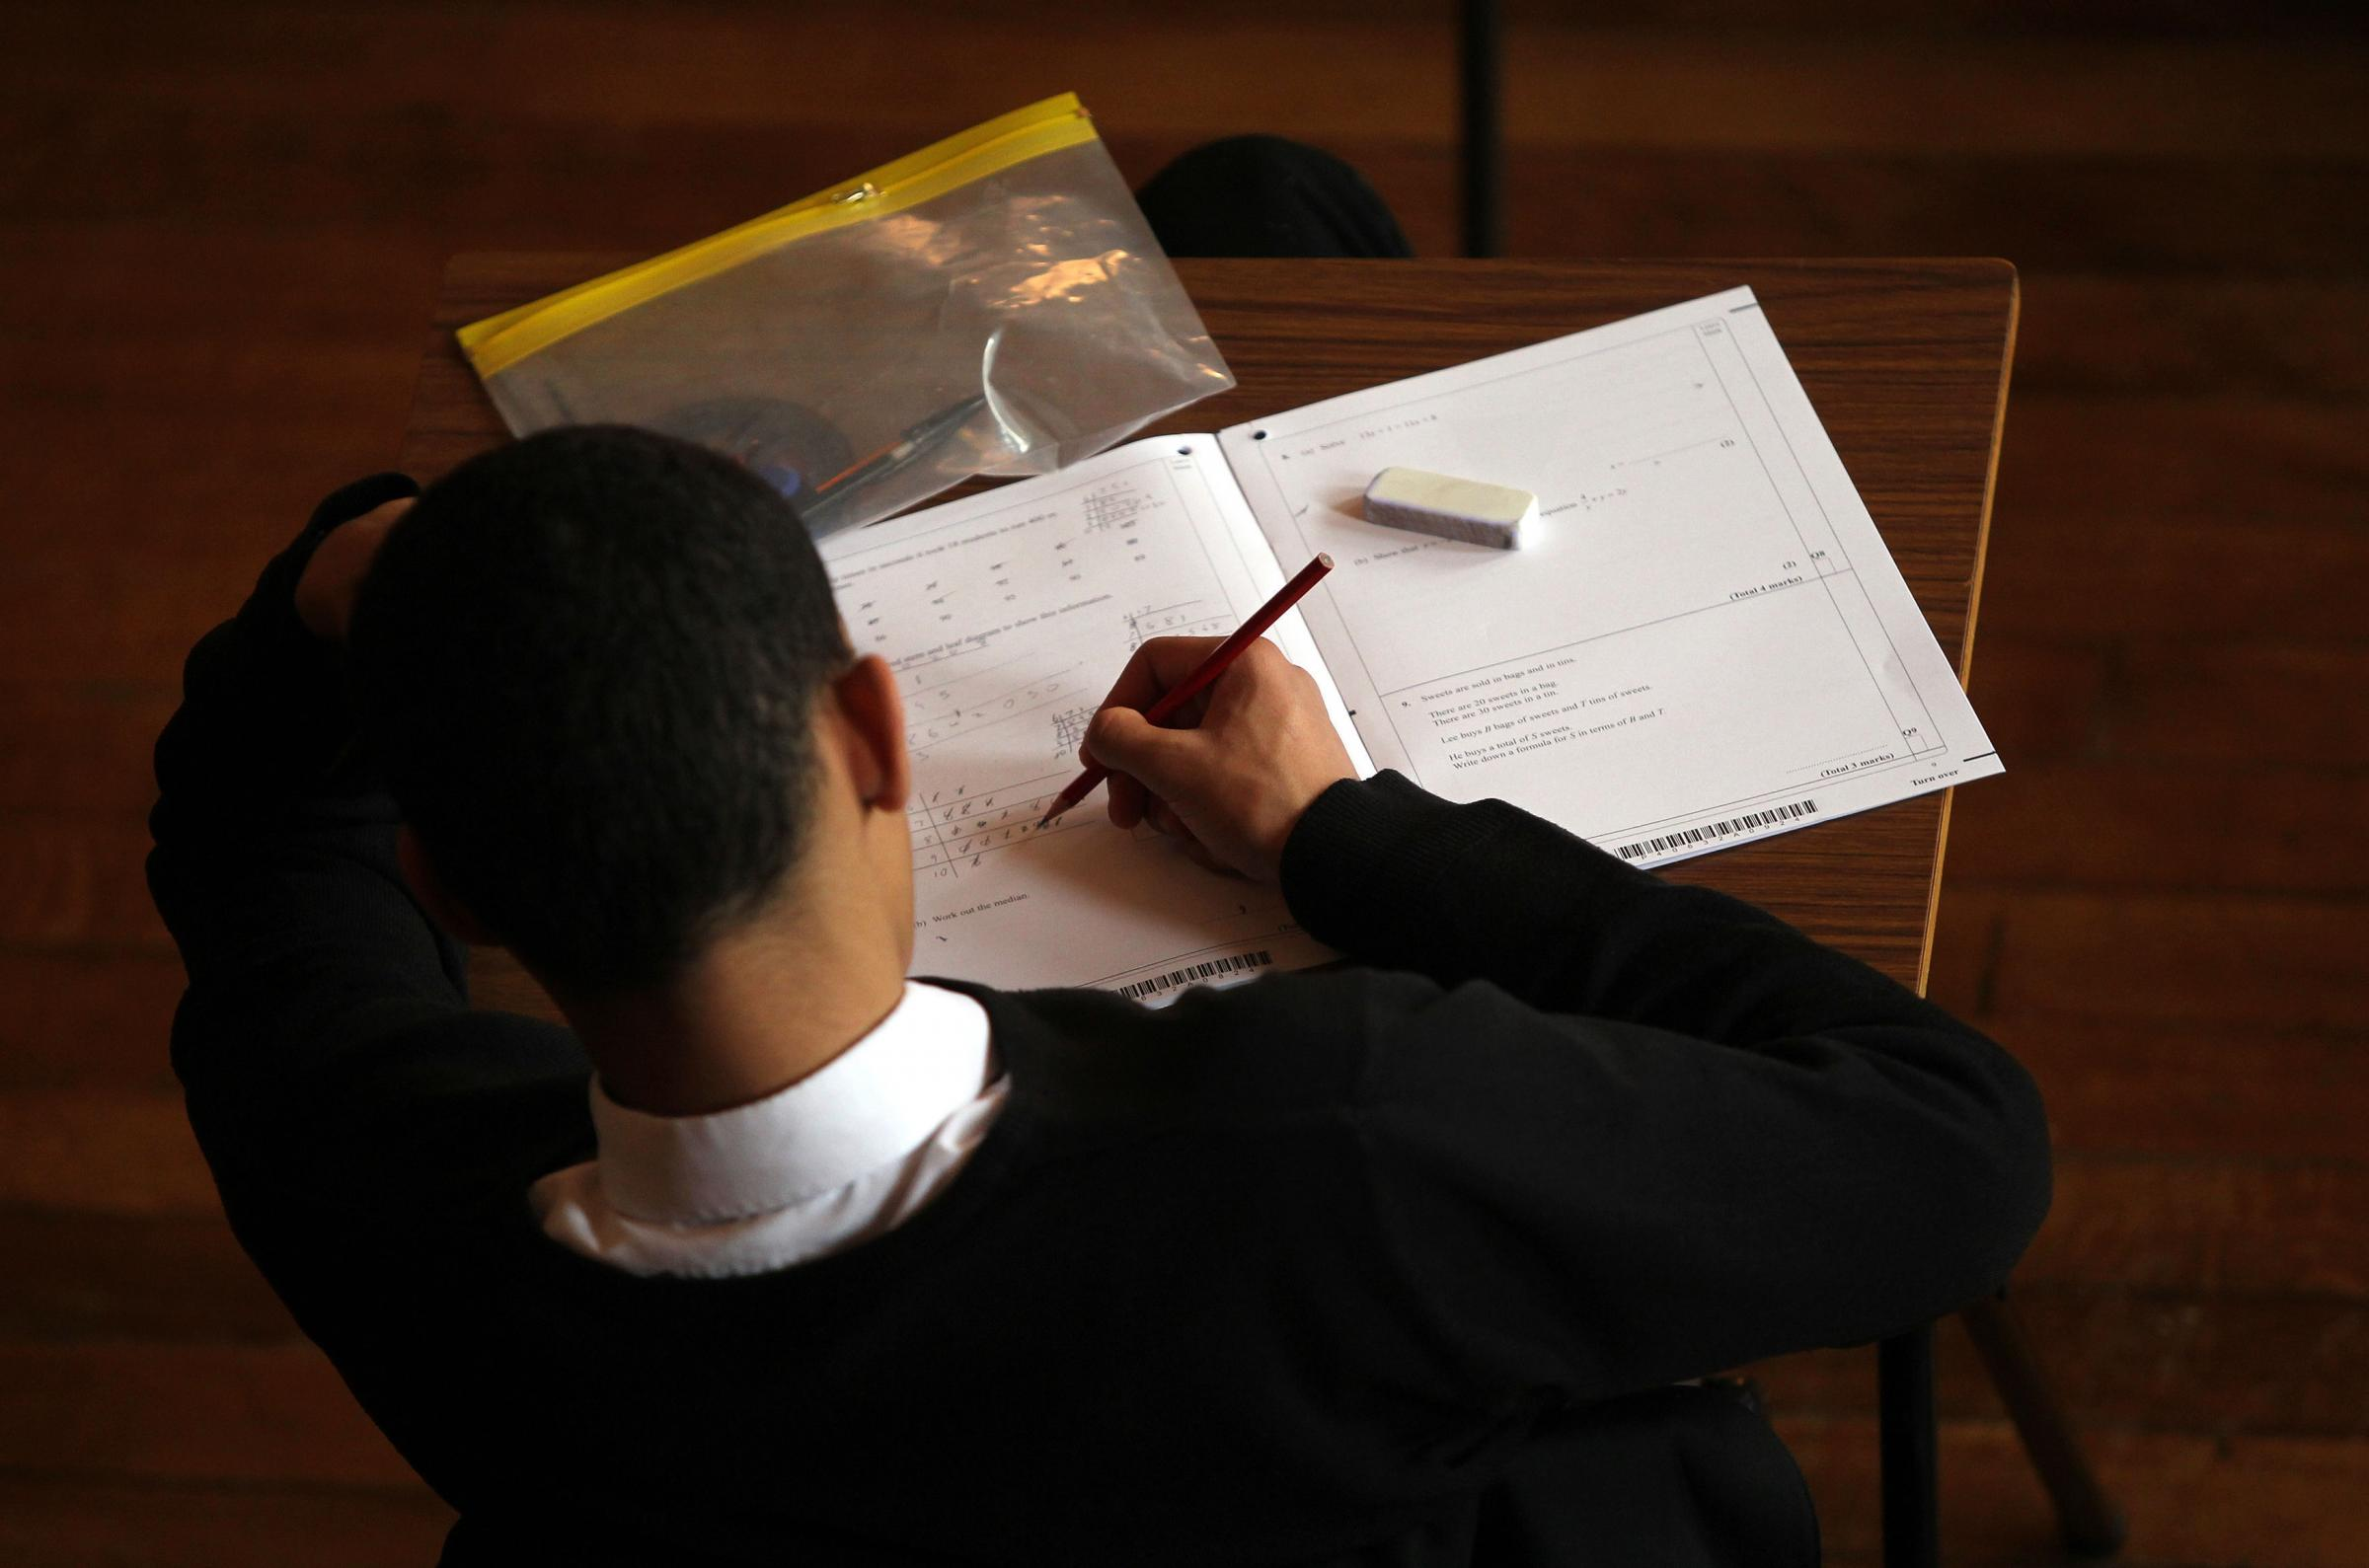 The SQA is concerned over the way some pupils are being coached